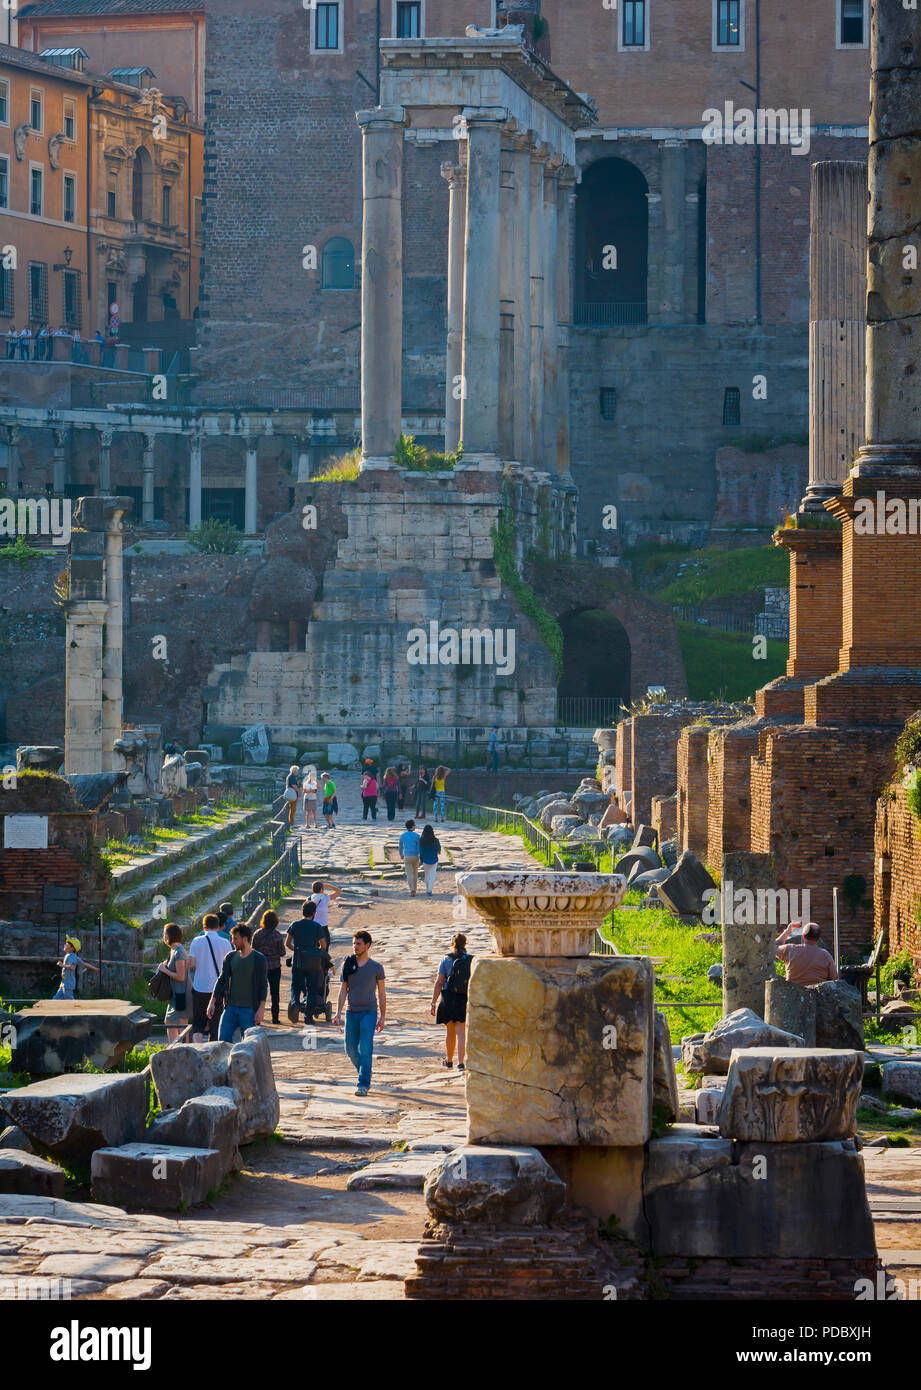 Rome, Italy.  The Roman Forum with the Temple of Saturn (Tempio di Saturno) in background. - Stock Image